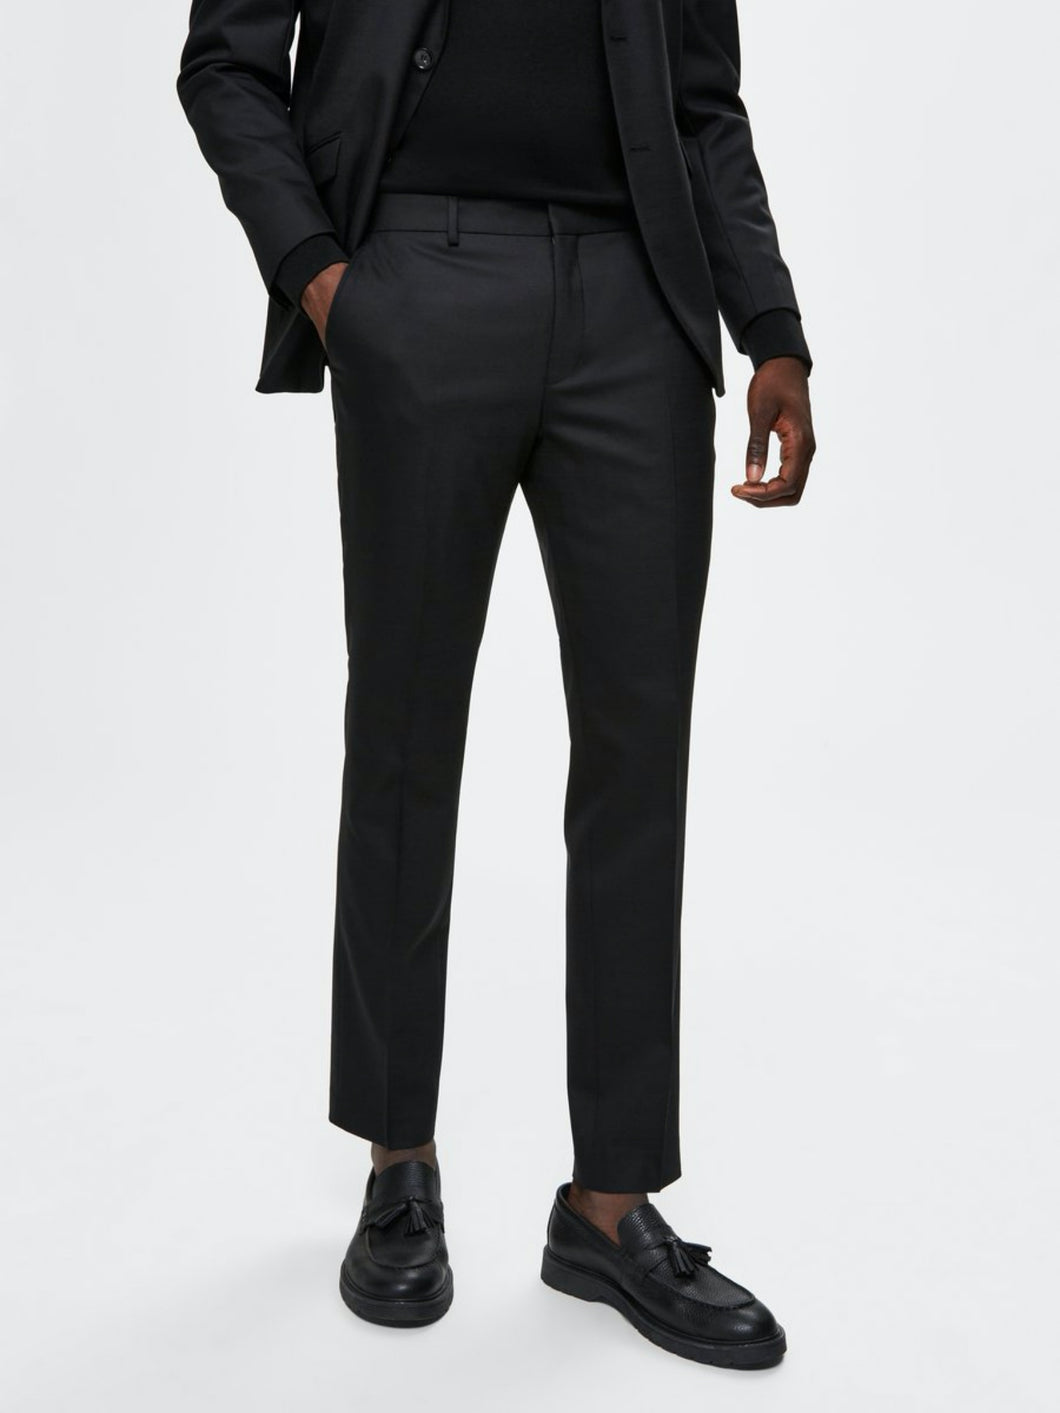 Slim Mylostate Black Trousers - Black / 46 - BYXA 16069376,